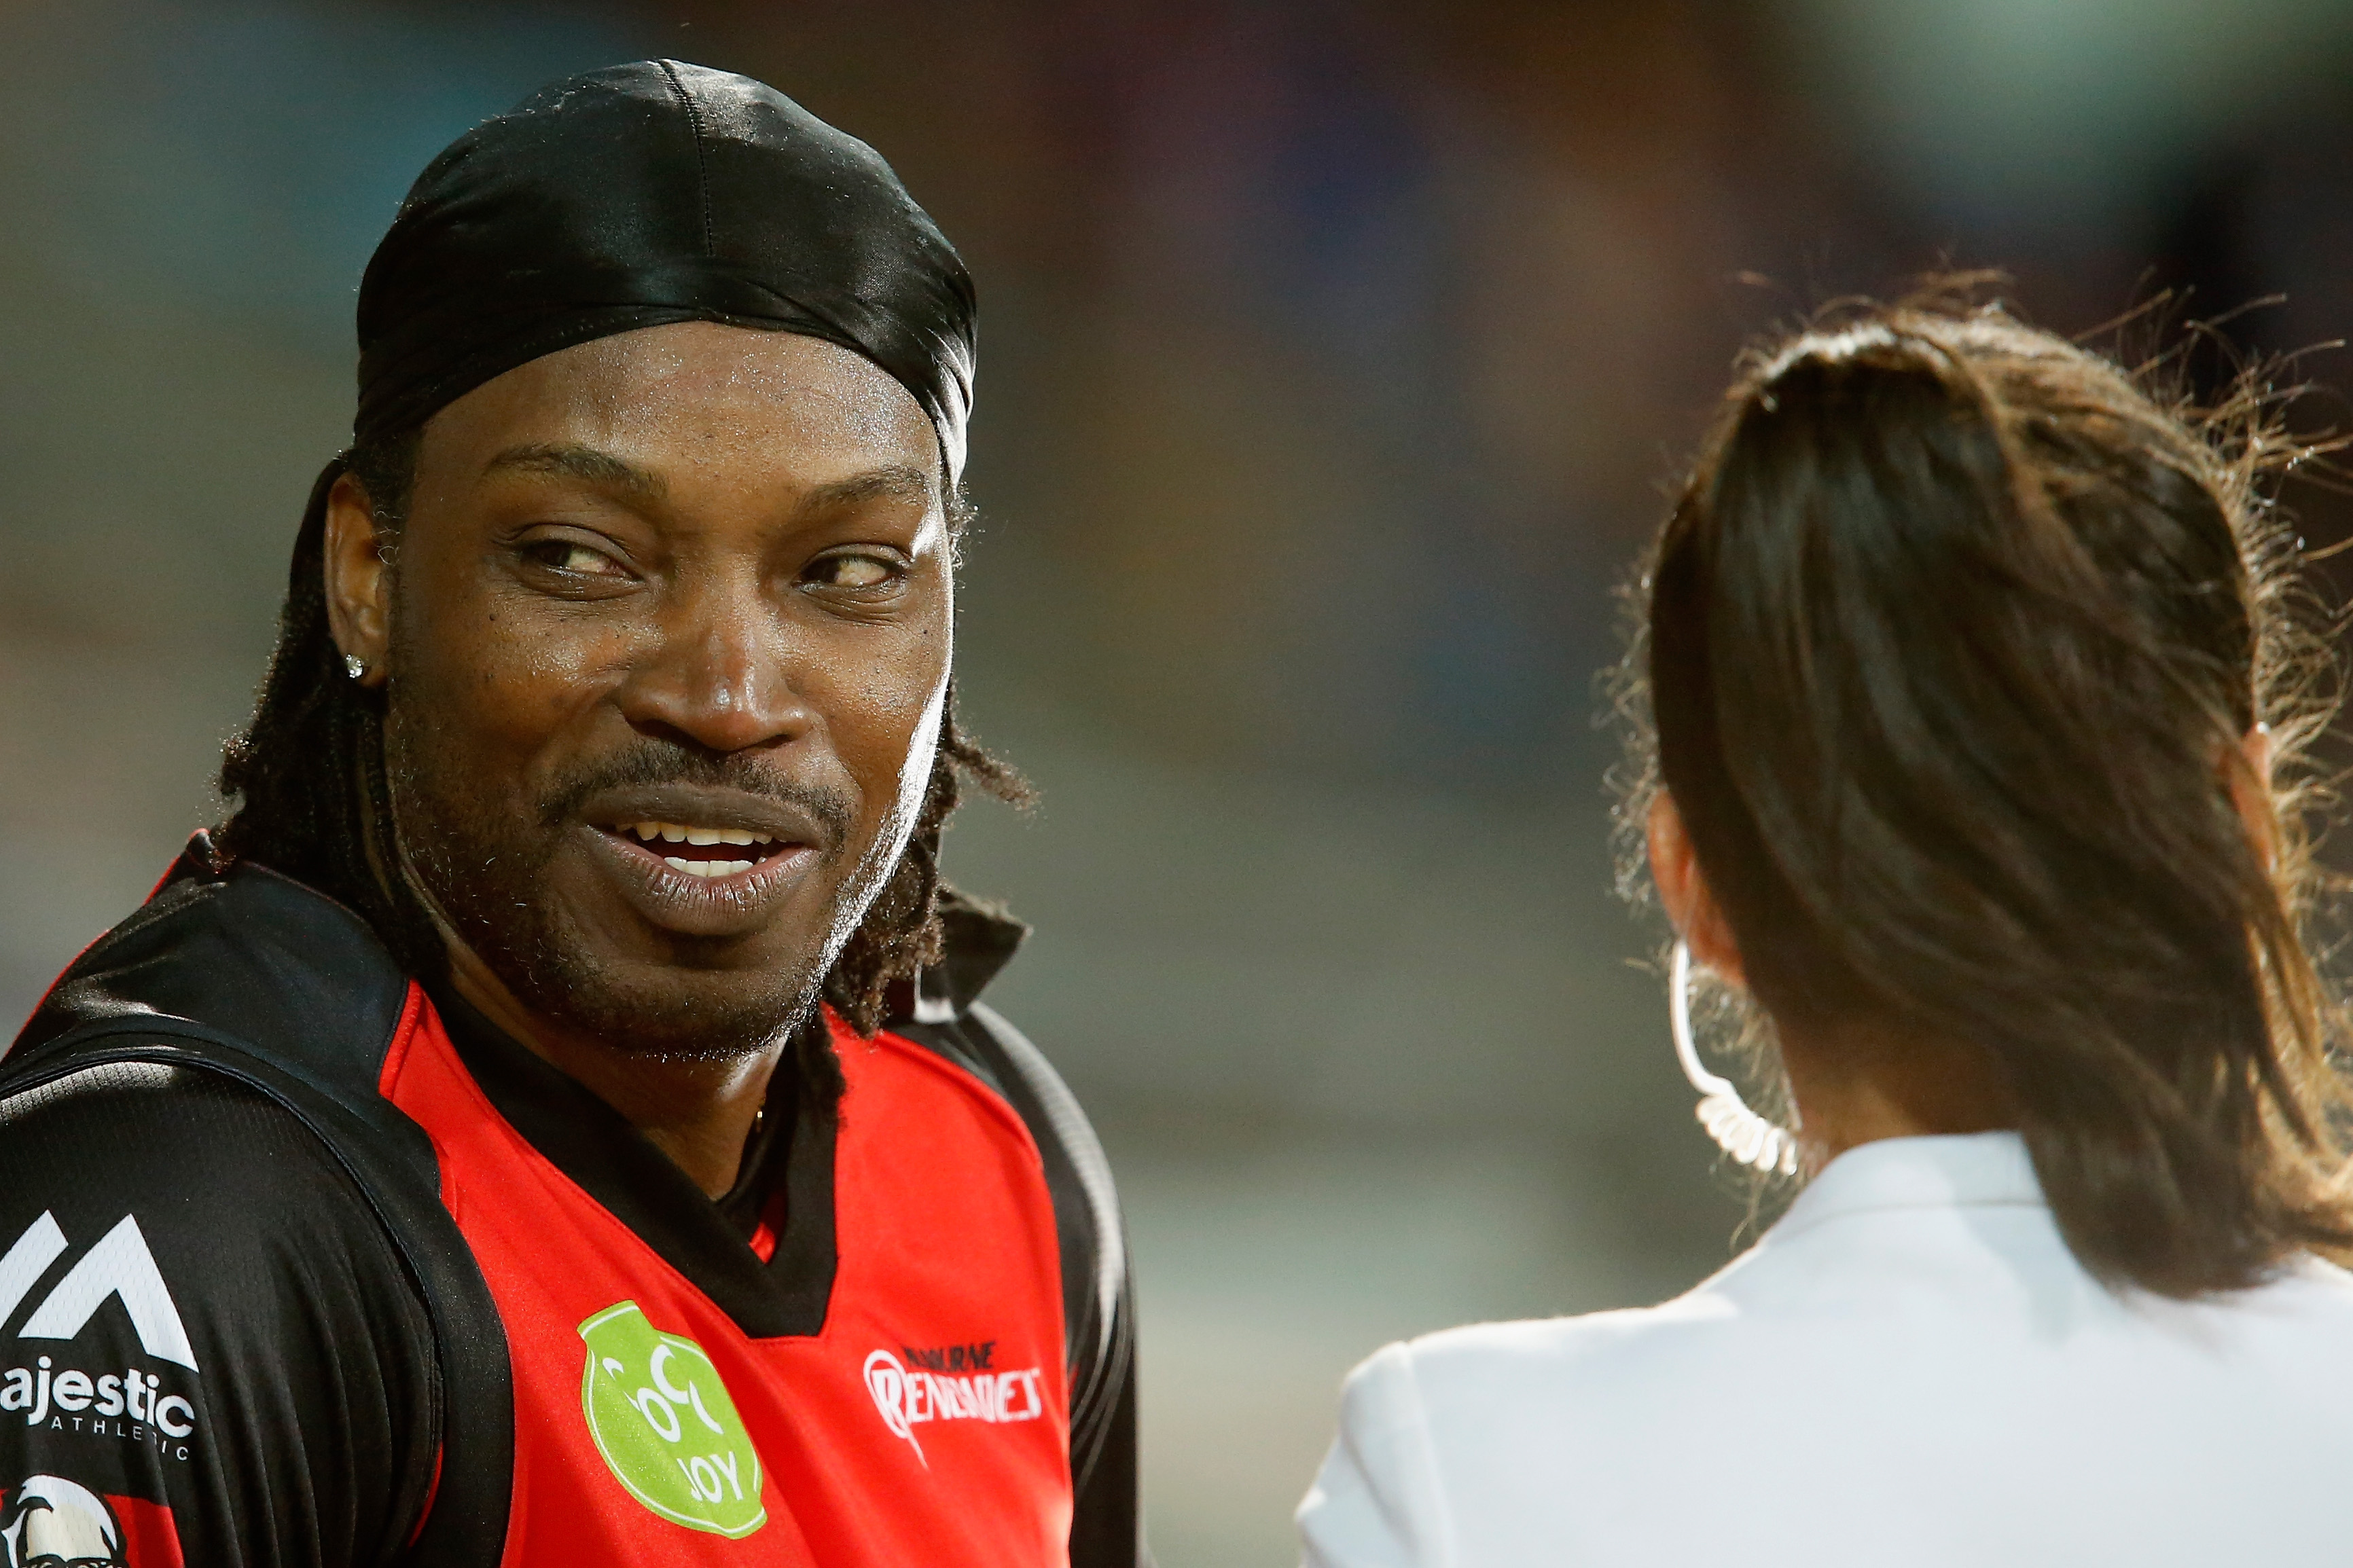 Chris Gayle of the Melbourne Renegades gives a TV interview to Mel Mclaughlin during the Big Bash League match at Blundstone Arena on Jan. 4, 2016, in Hobart, Australia